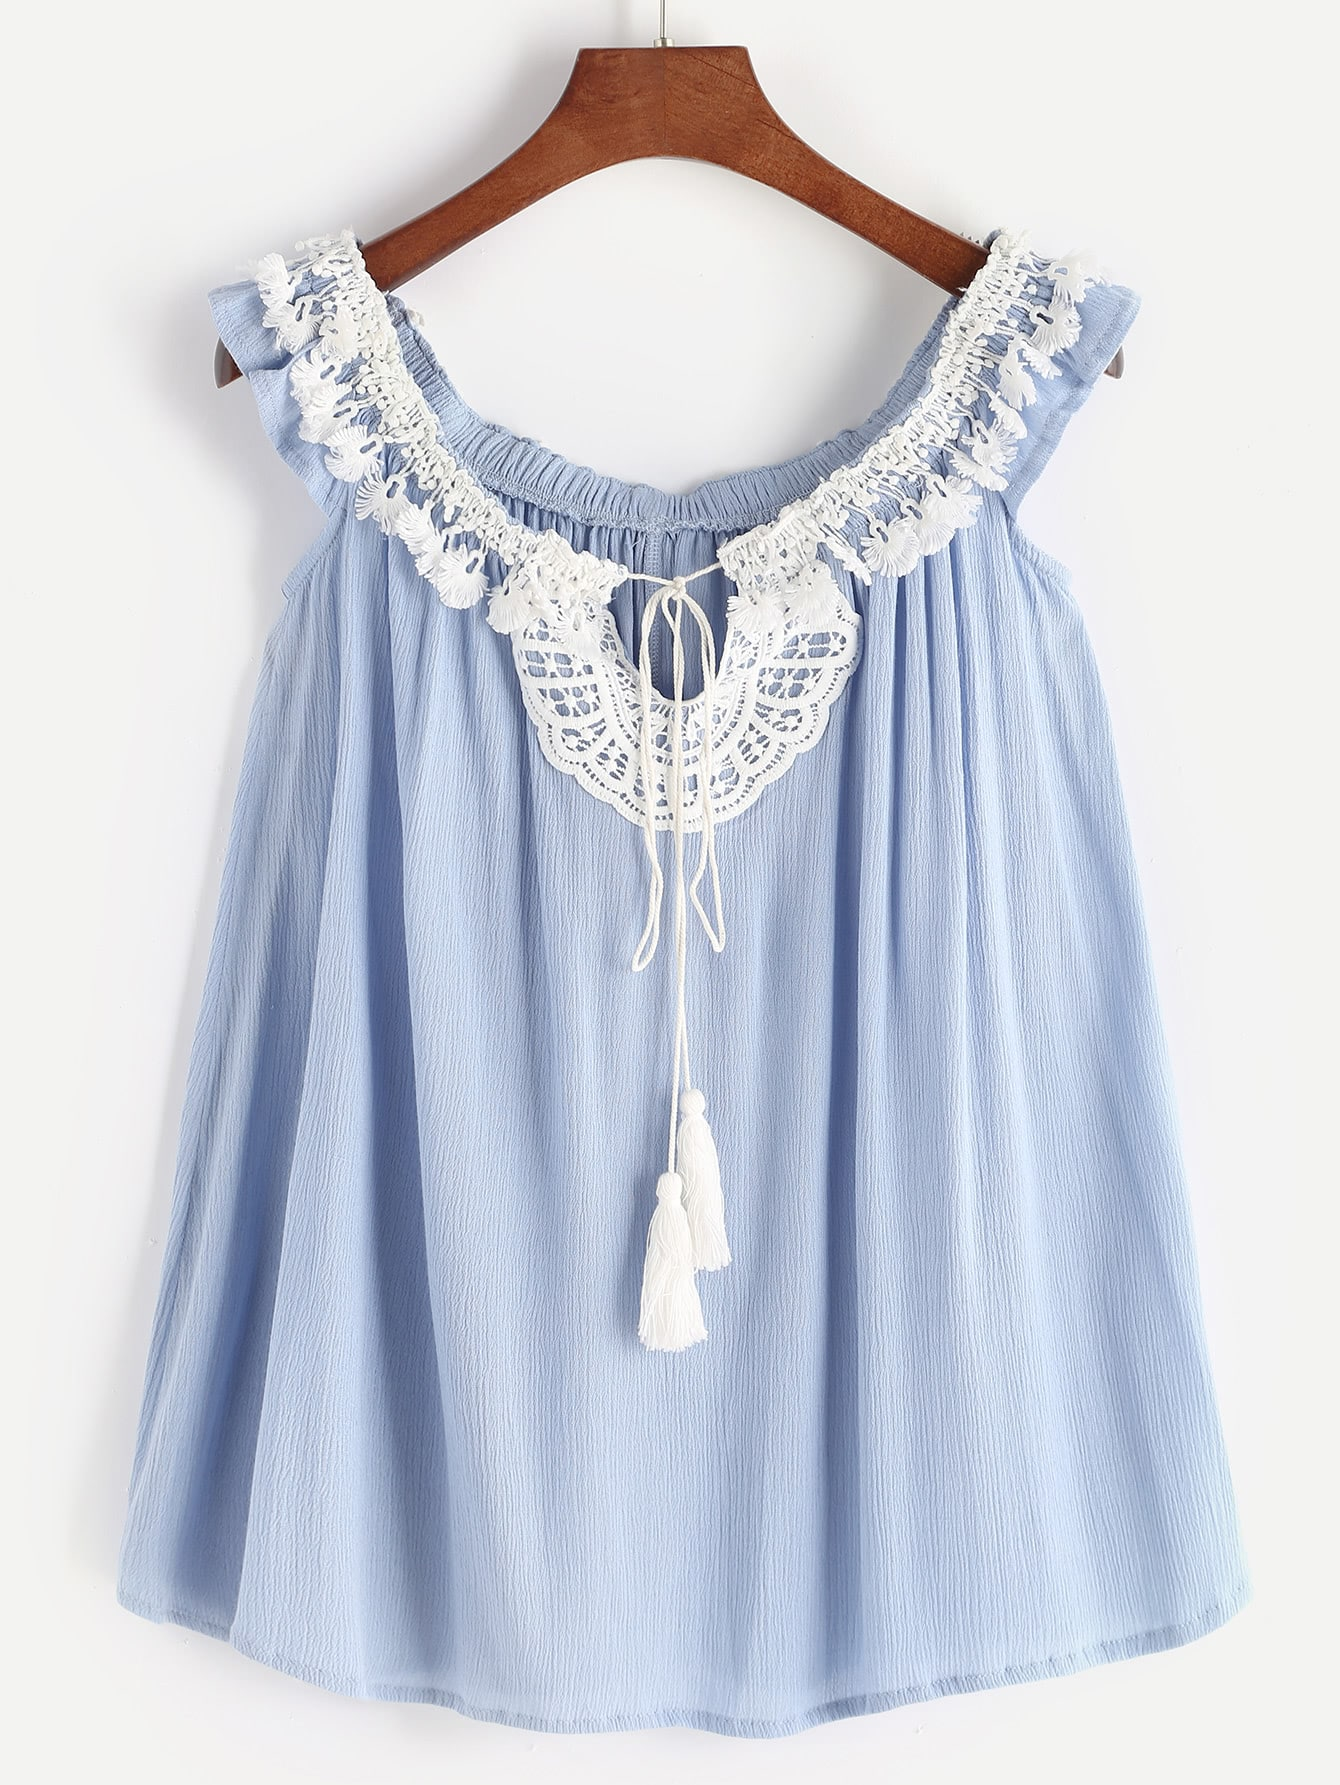 Lace Insert Lace Up Sleeveless Top RBLO170328002